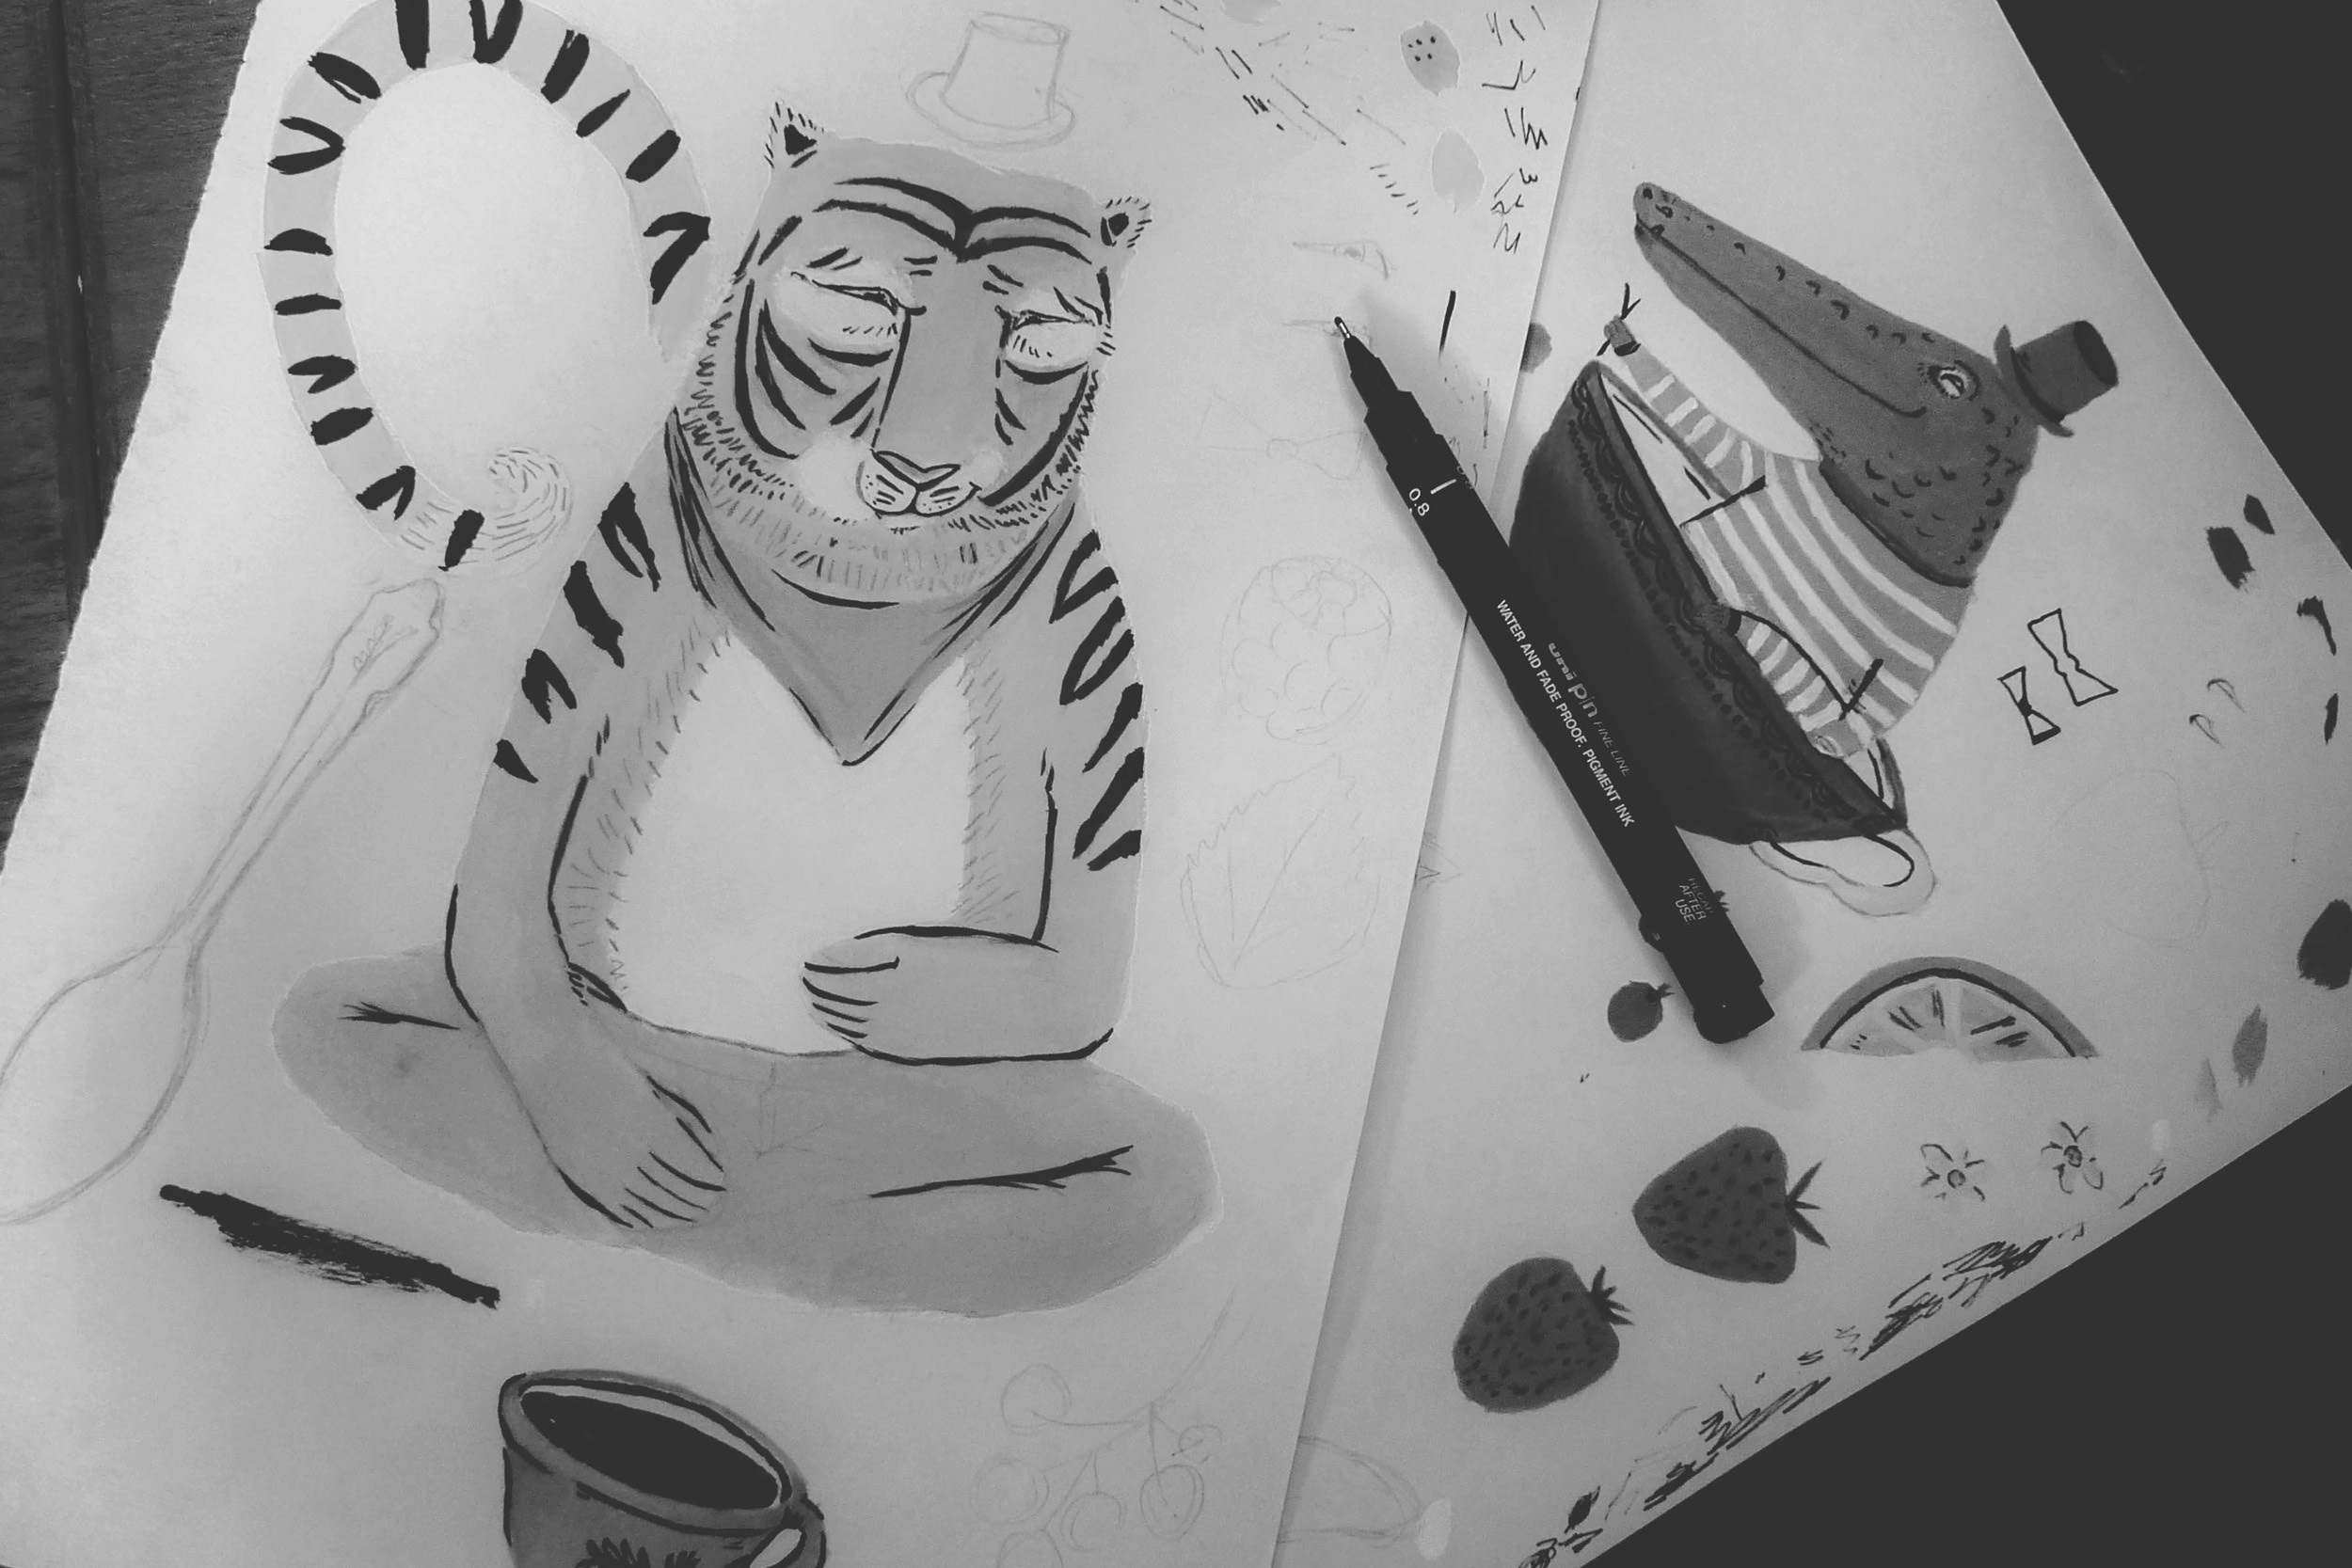 Small & Wild tea packaging design illustration sketches by Wild Bear Designs